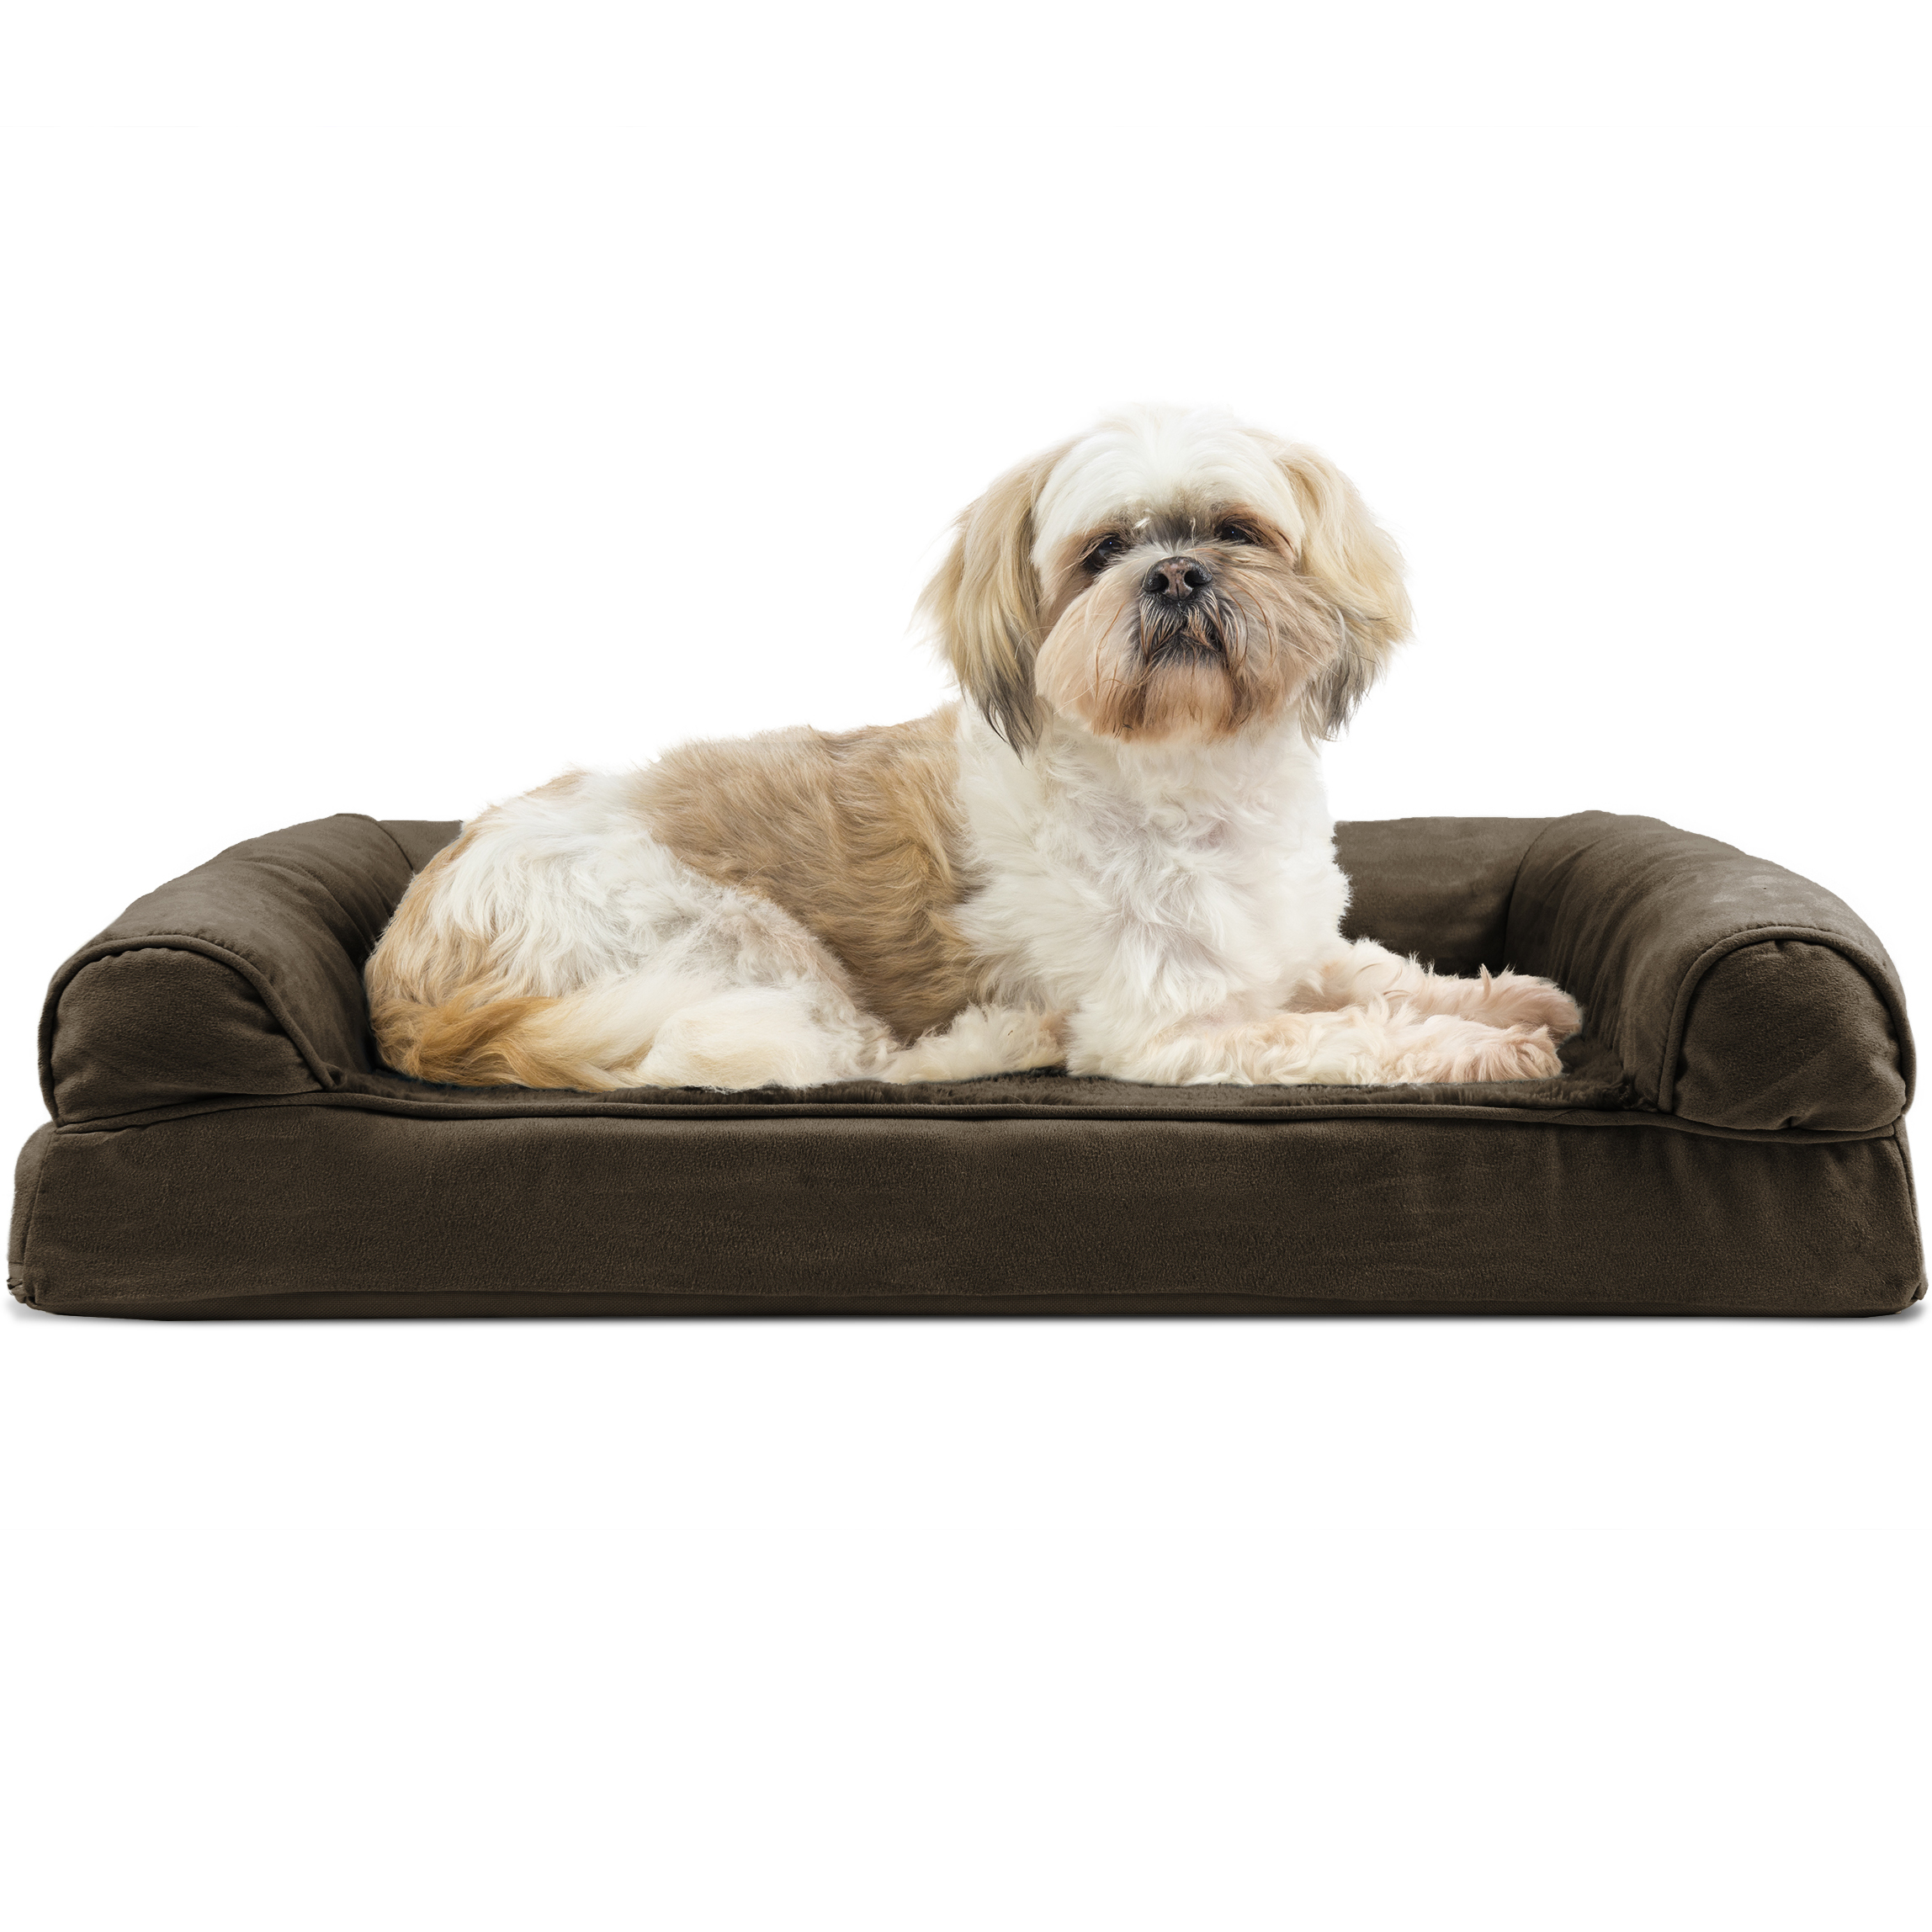 FurHaven Pet Dog Bed | Orthopedic Ultra Plush Sofa-Style Couch Pet Bed for Dogs & Cats, Espresso, Medium